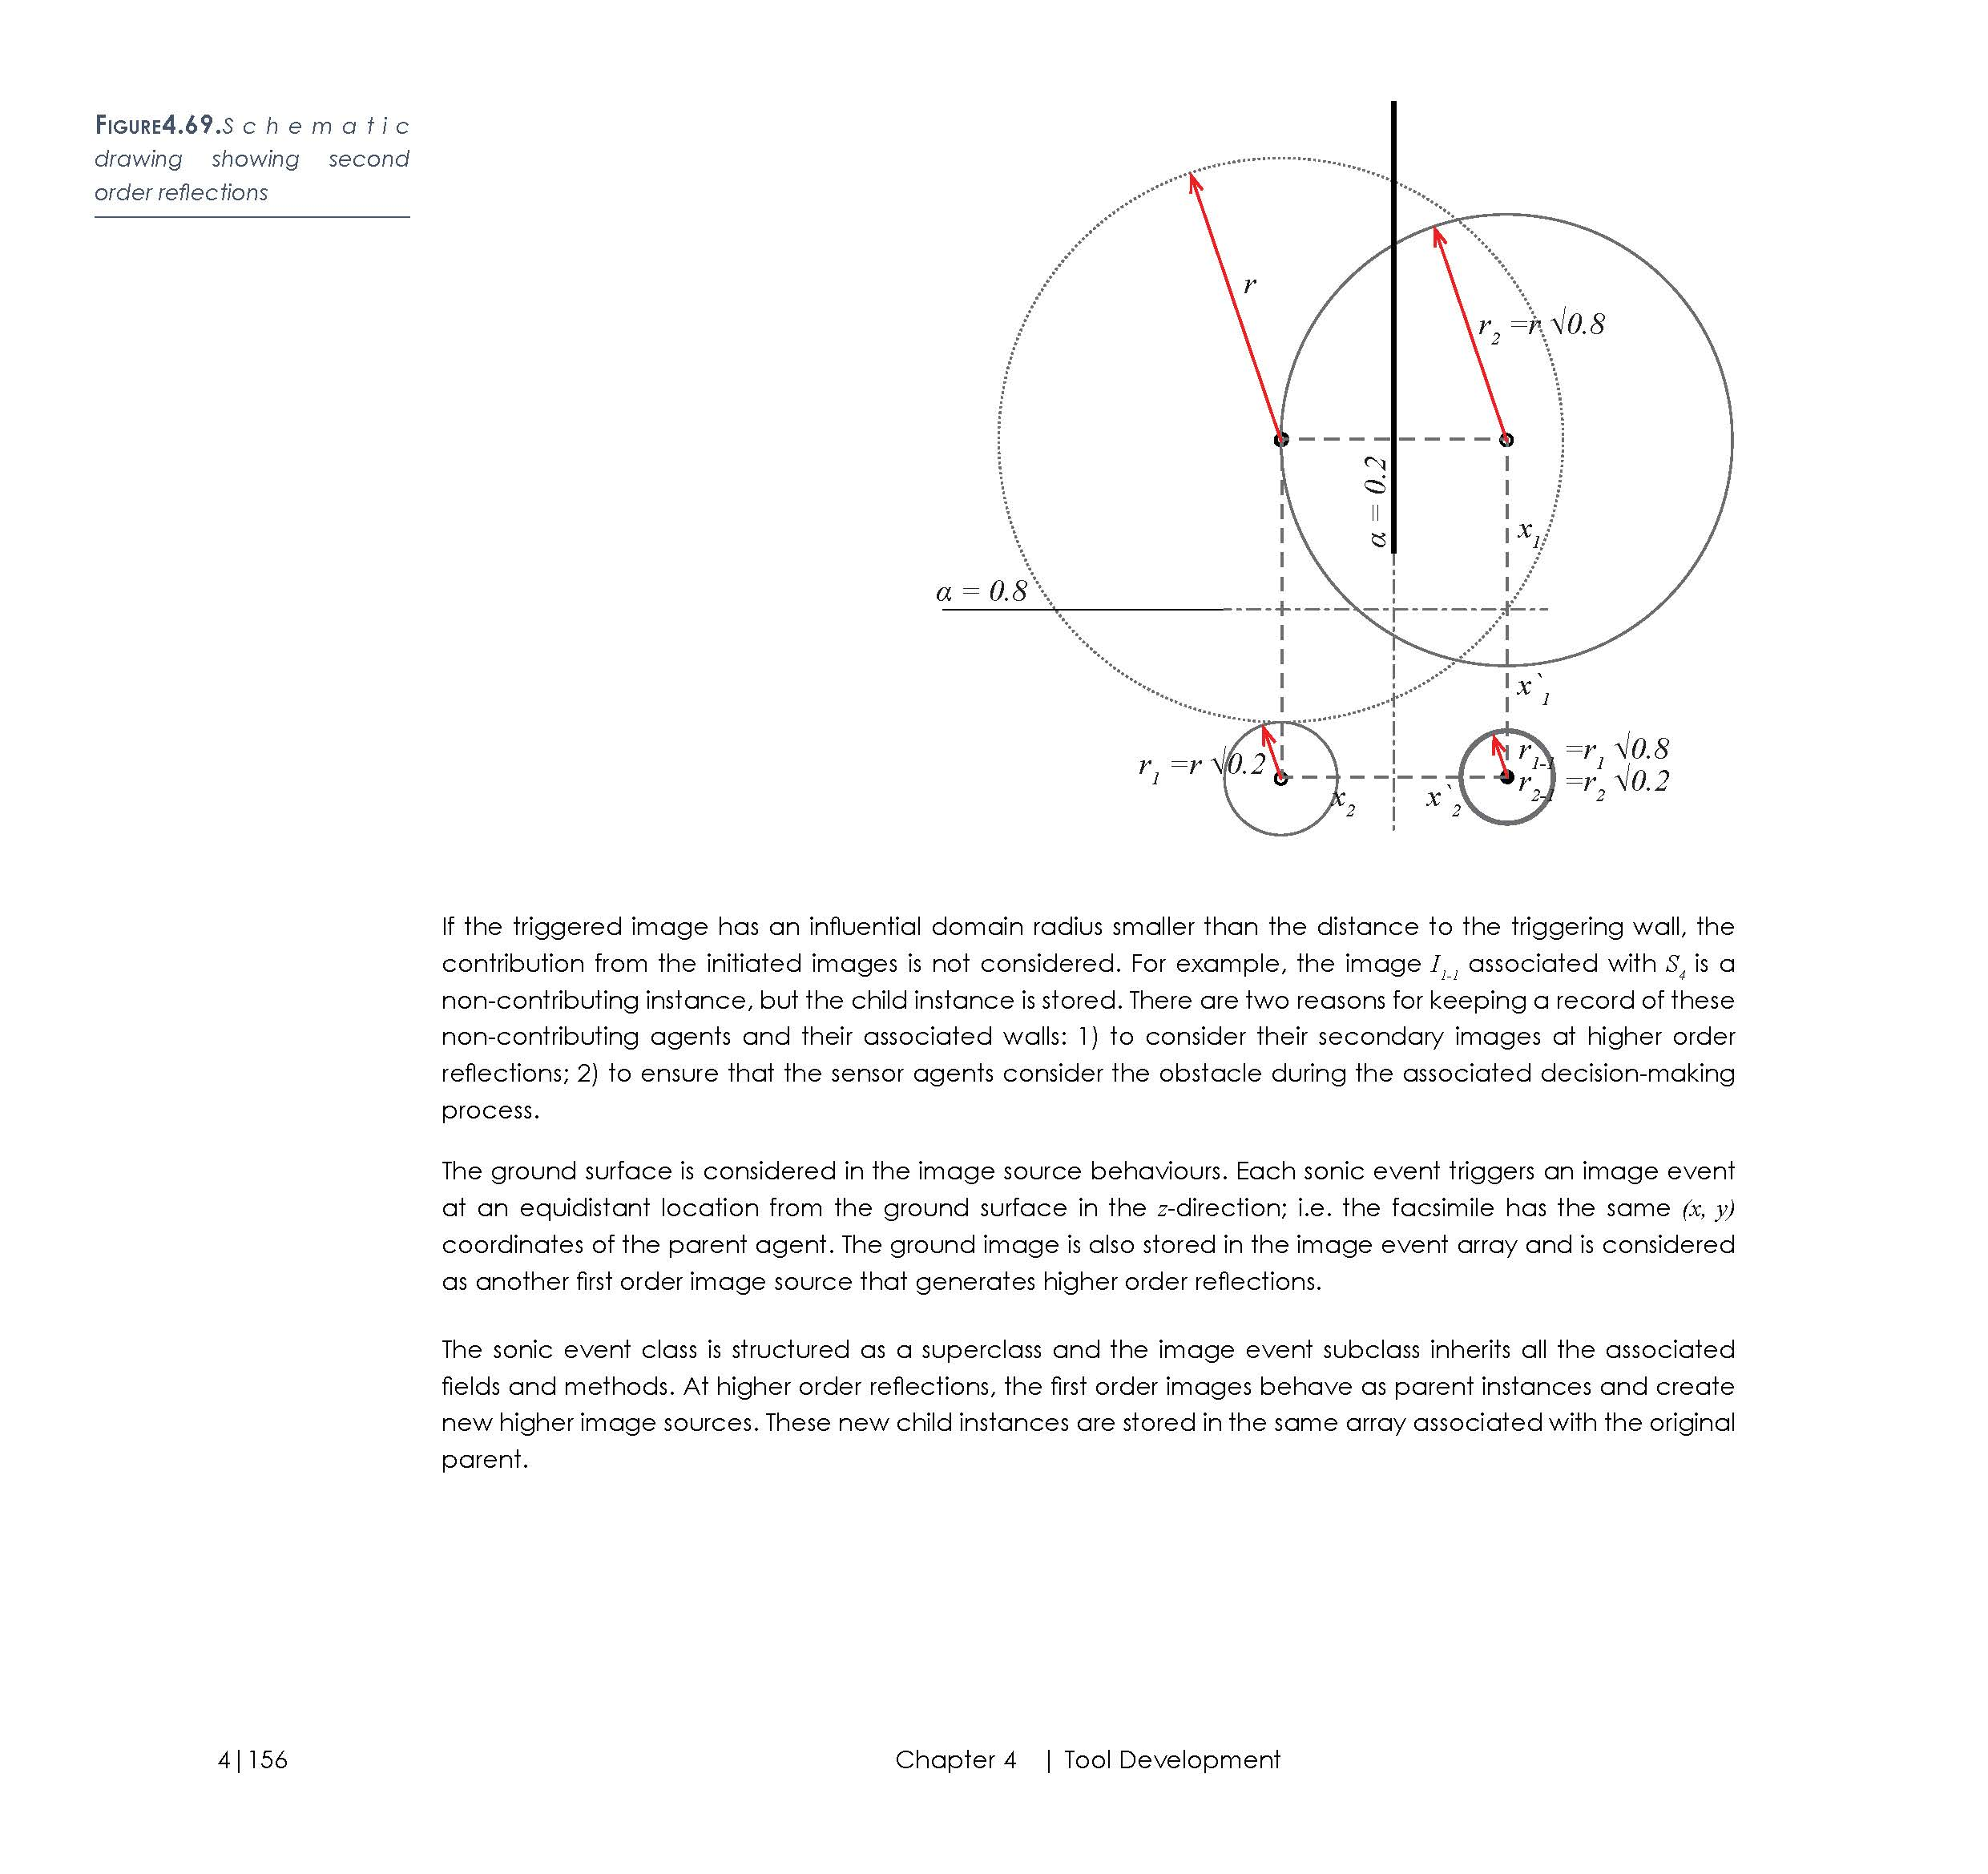 16.03.03_Thesis_01_Interactive_Page_192.jpg